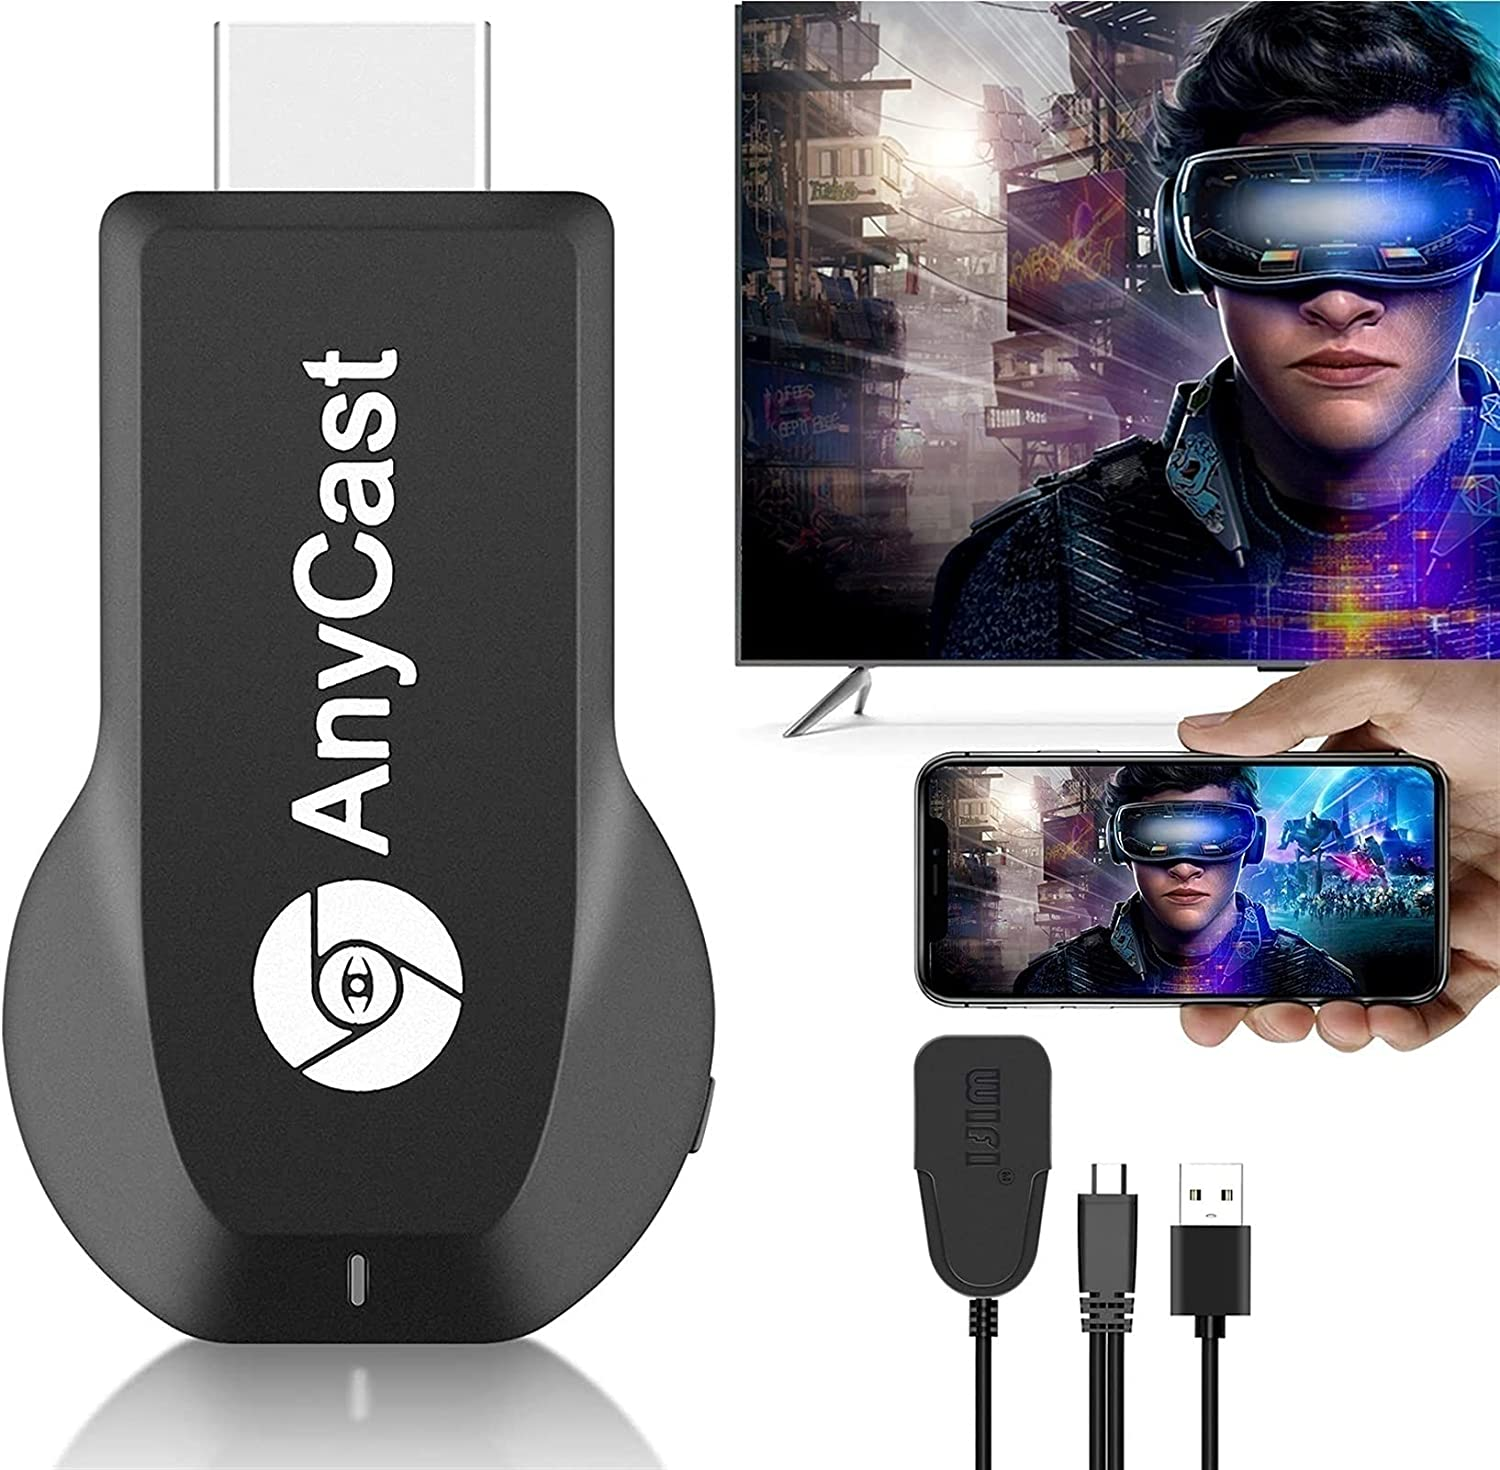 Streaming Media Players 2021NEW Wireless Display Adapter 4K Online limited product HDMI safety